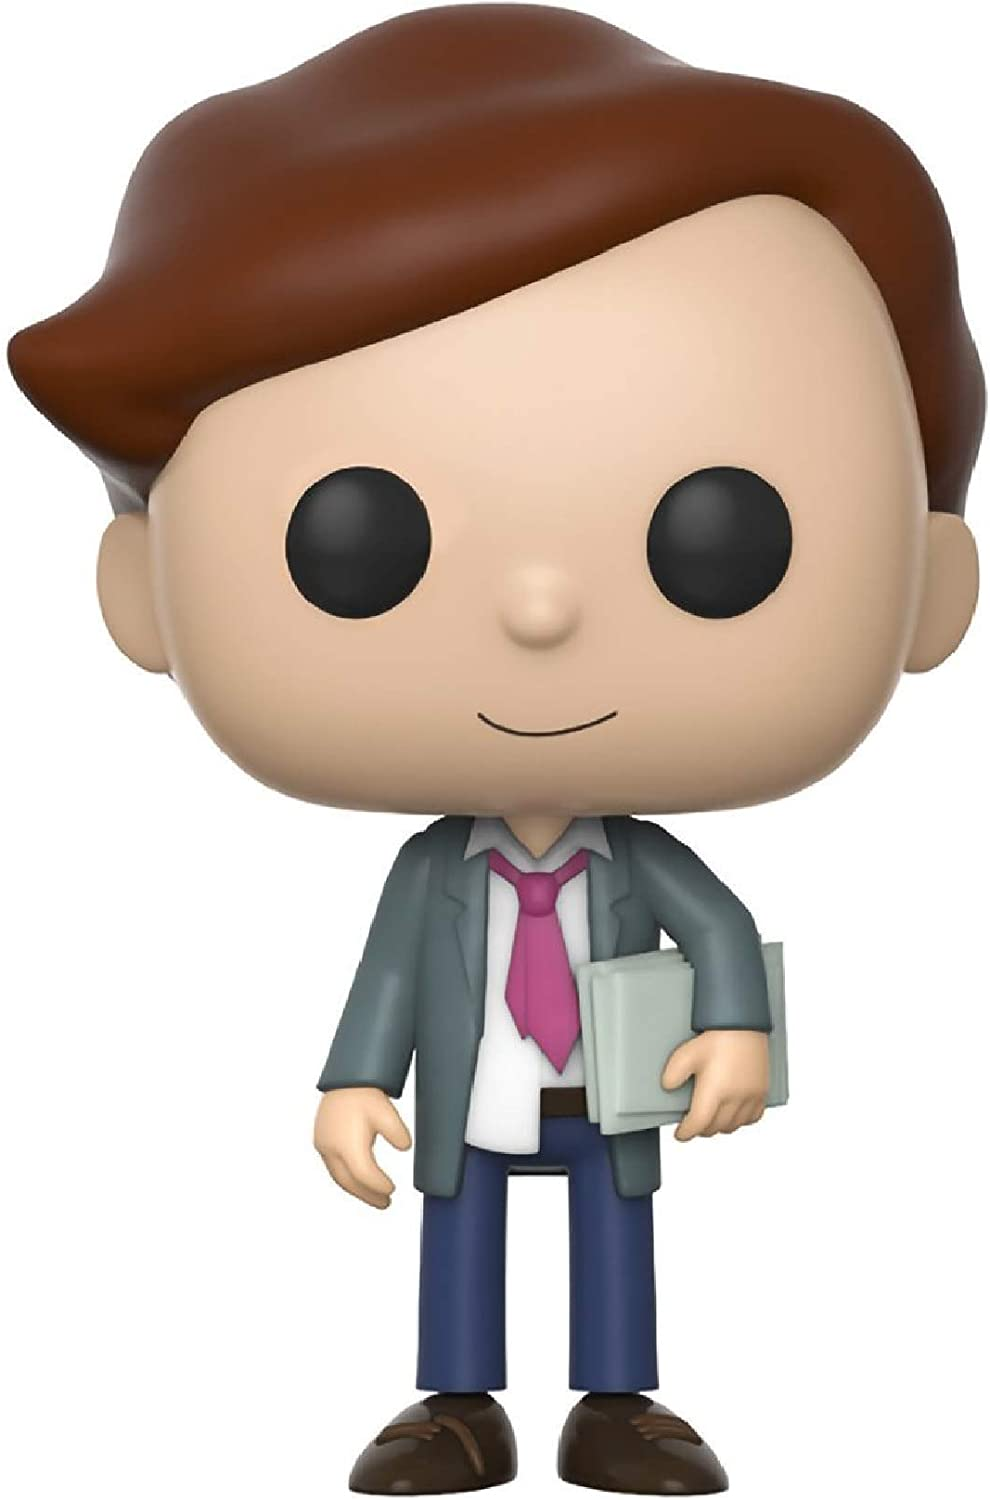 Rick and Morty Lawyer Morty Funko Pop  Vinyl Figure and (Bundled with PredECTOR CASE)